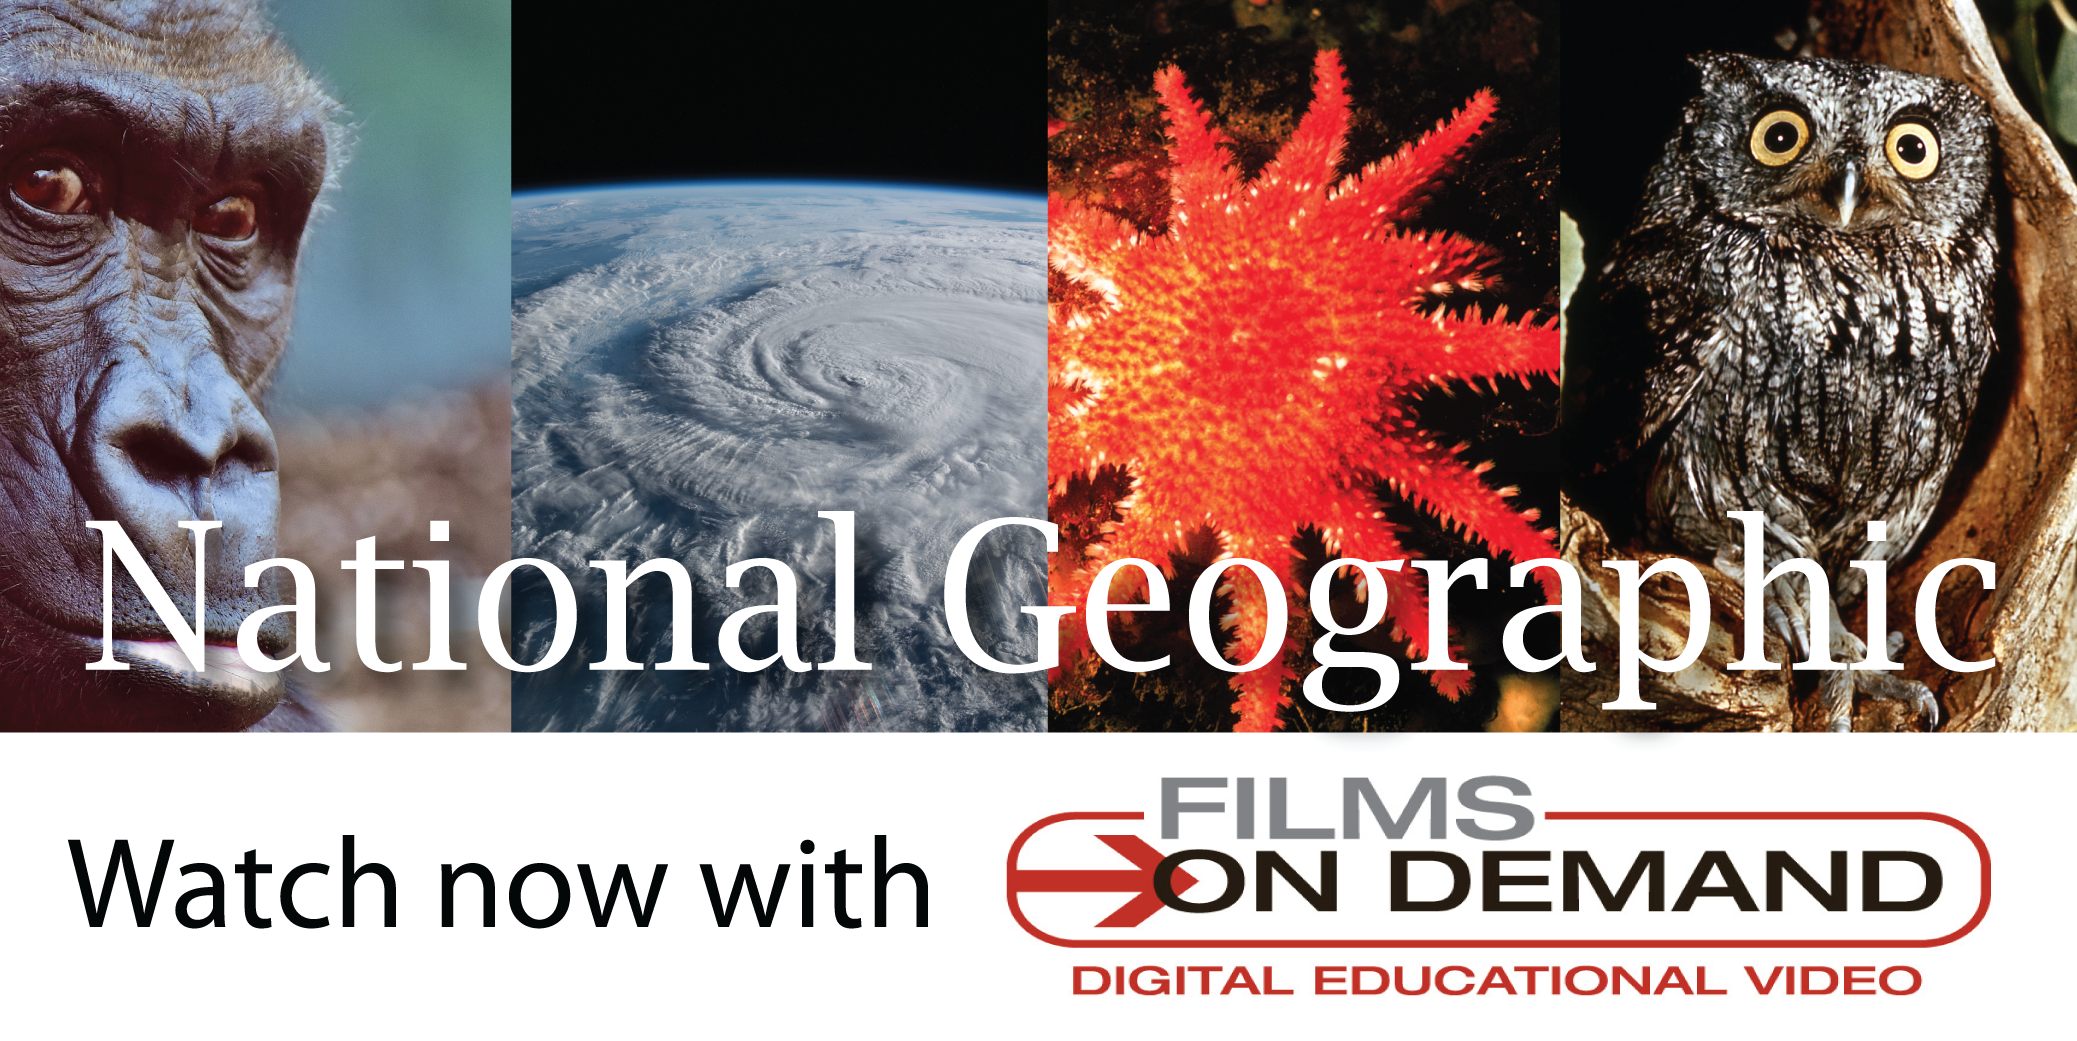 Watch National Geographic streaming films